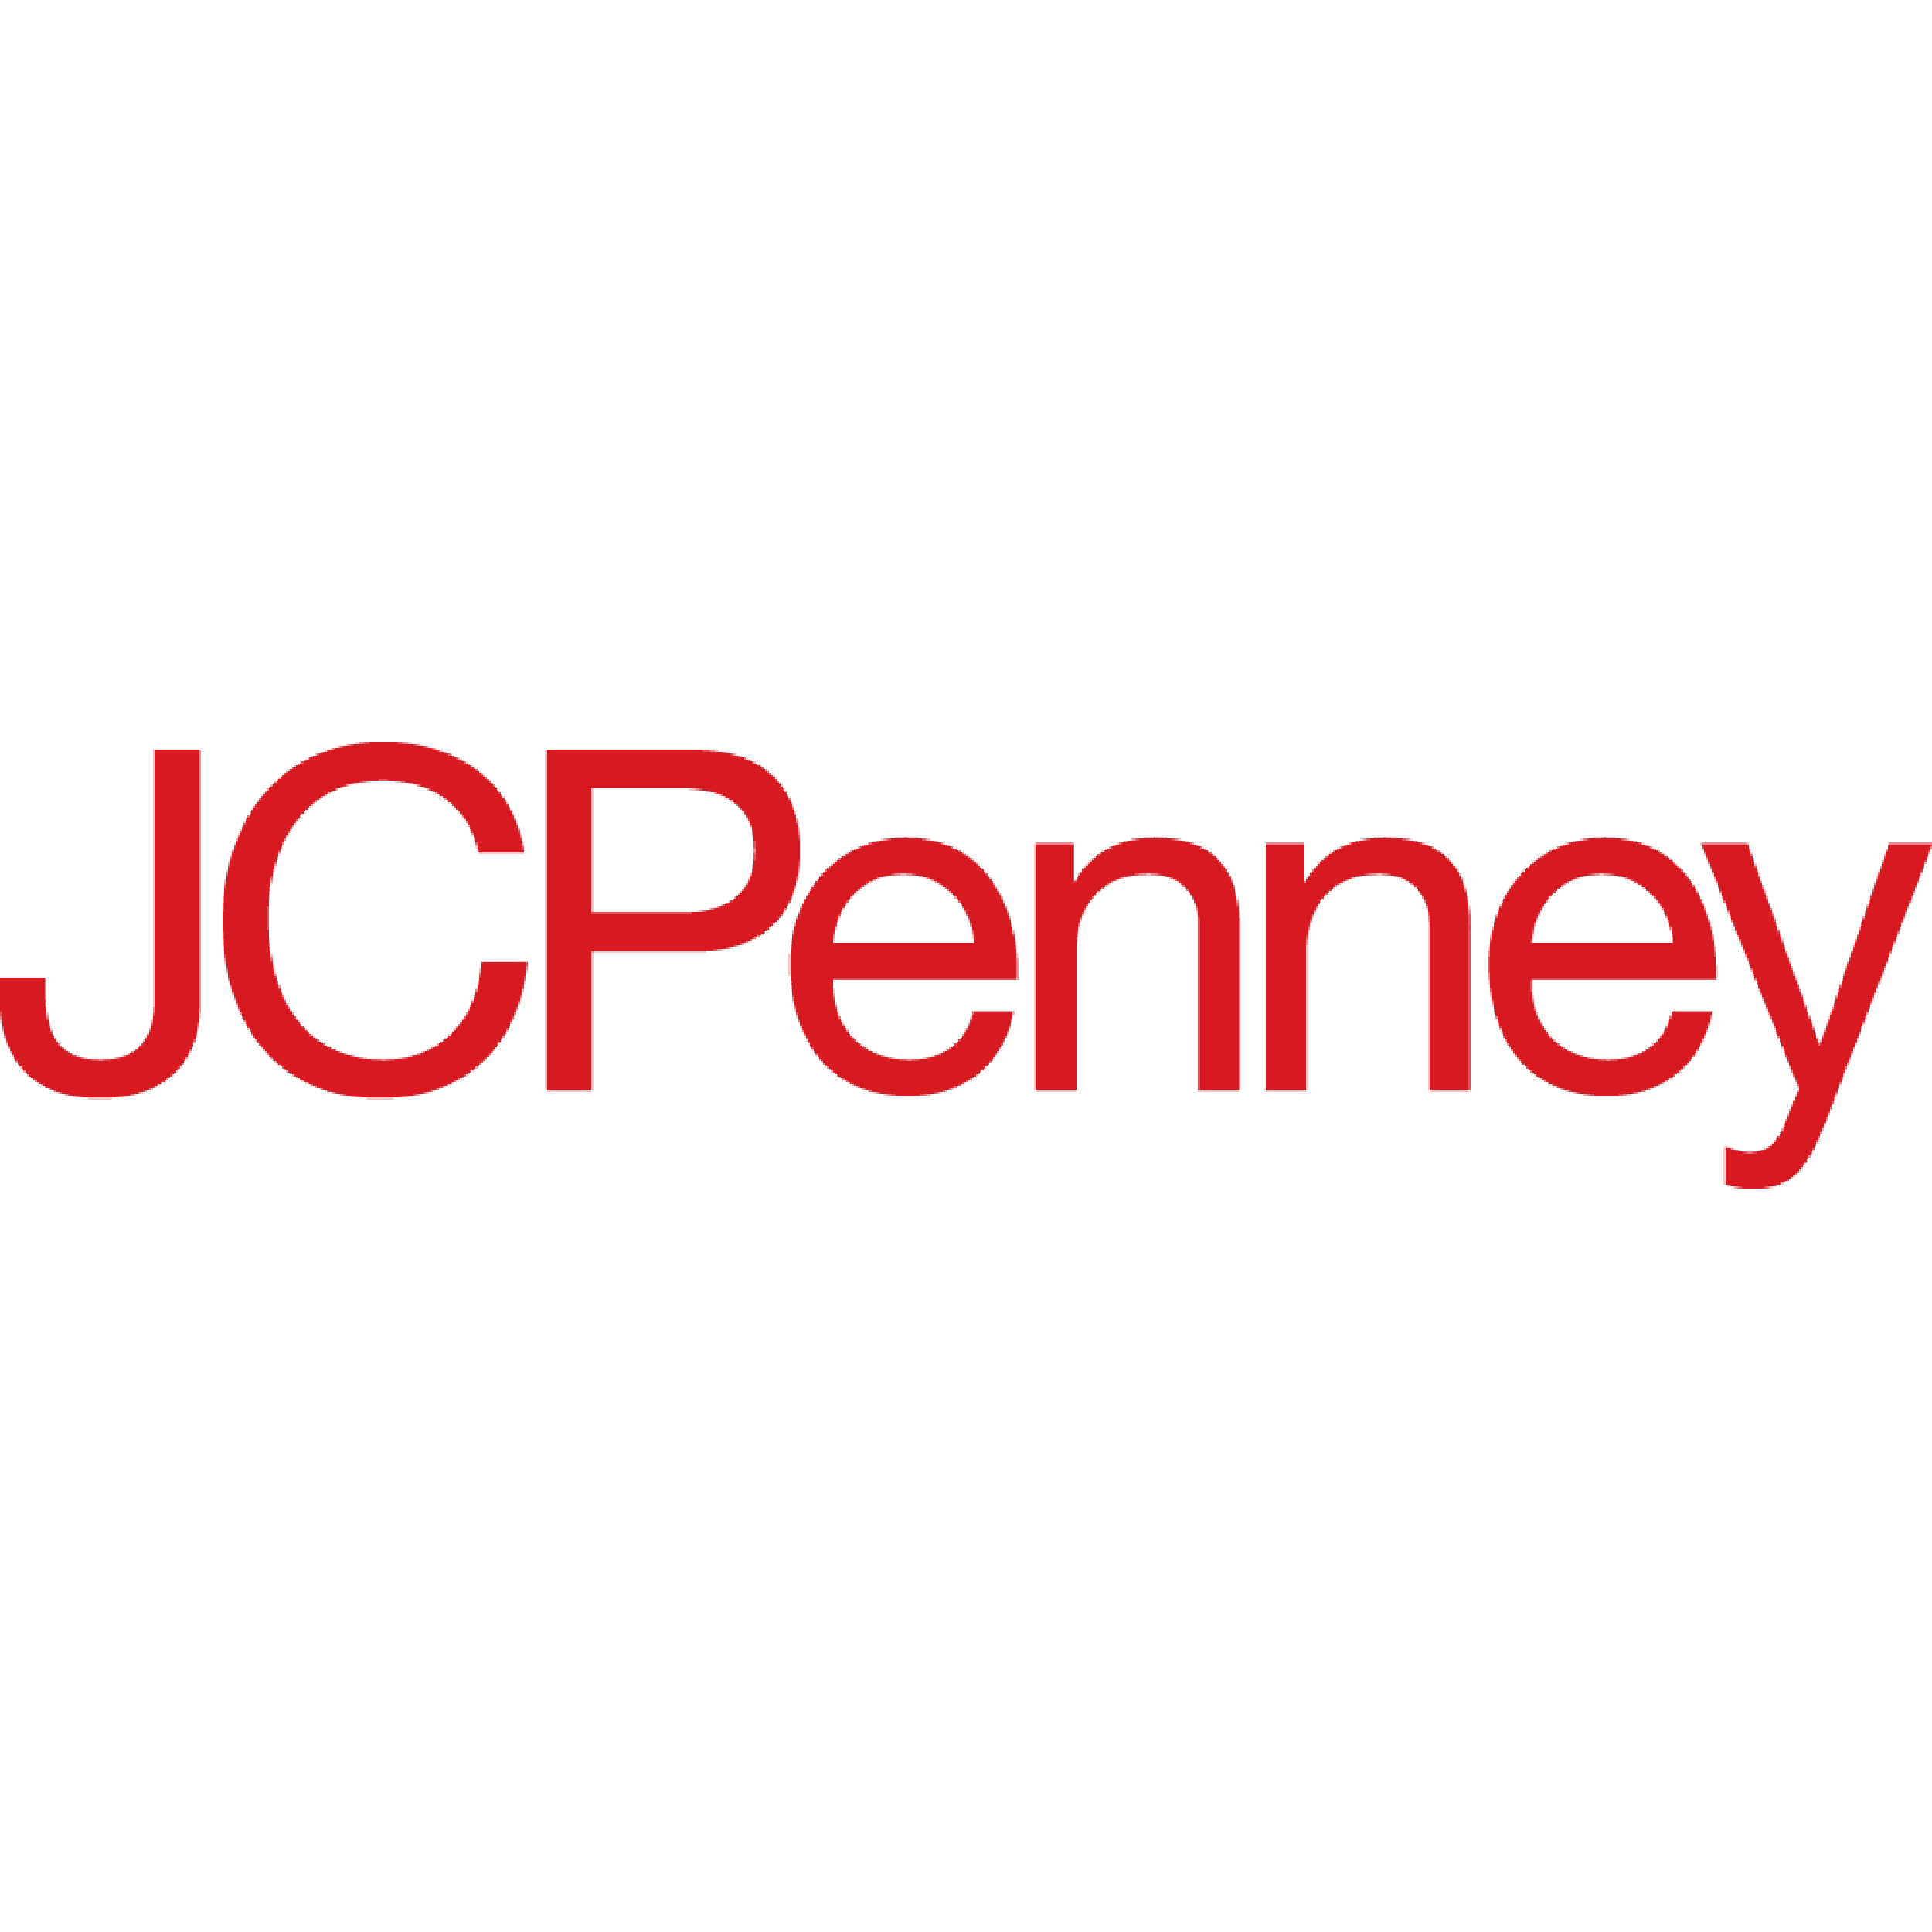 JCPenney - Macon, GA - Department Stores